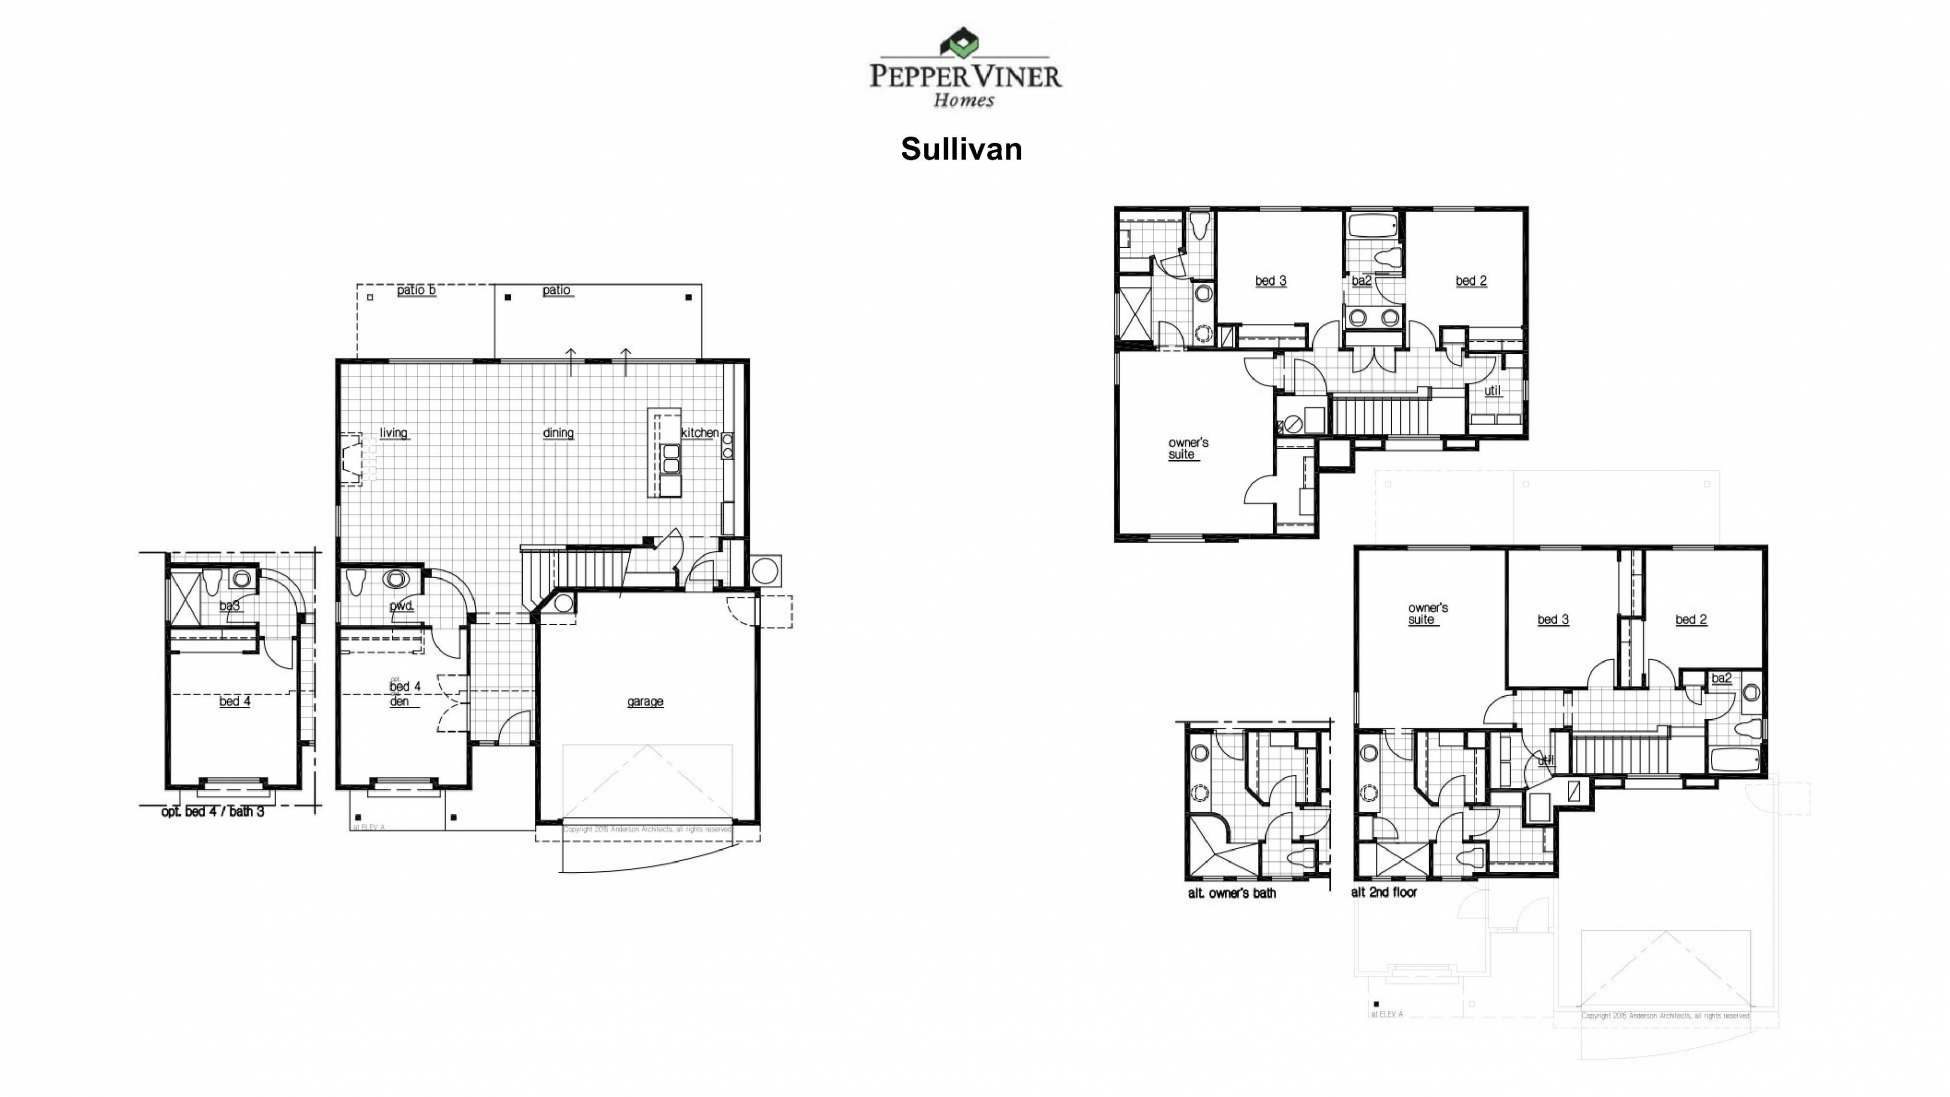 Elementary place floor plans pepper viner homes for Sullivan floor plan